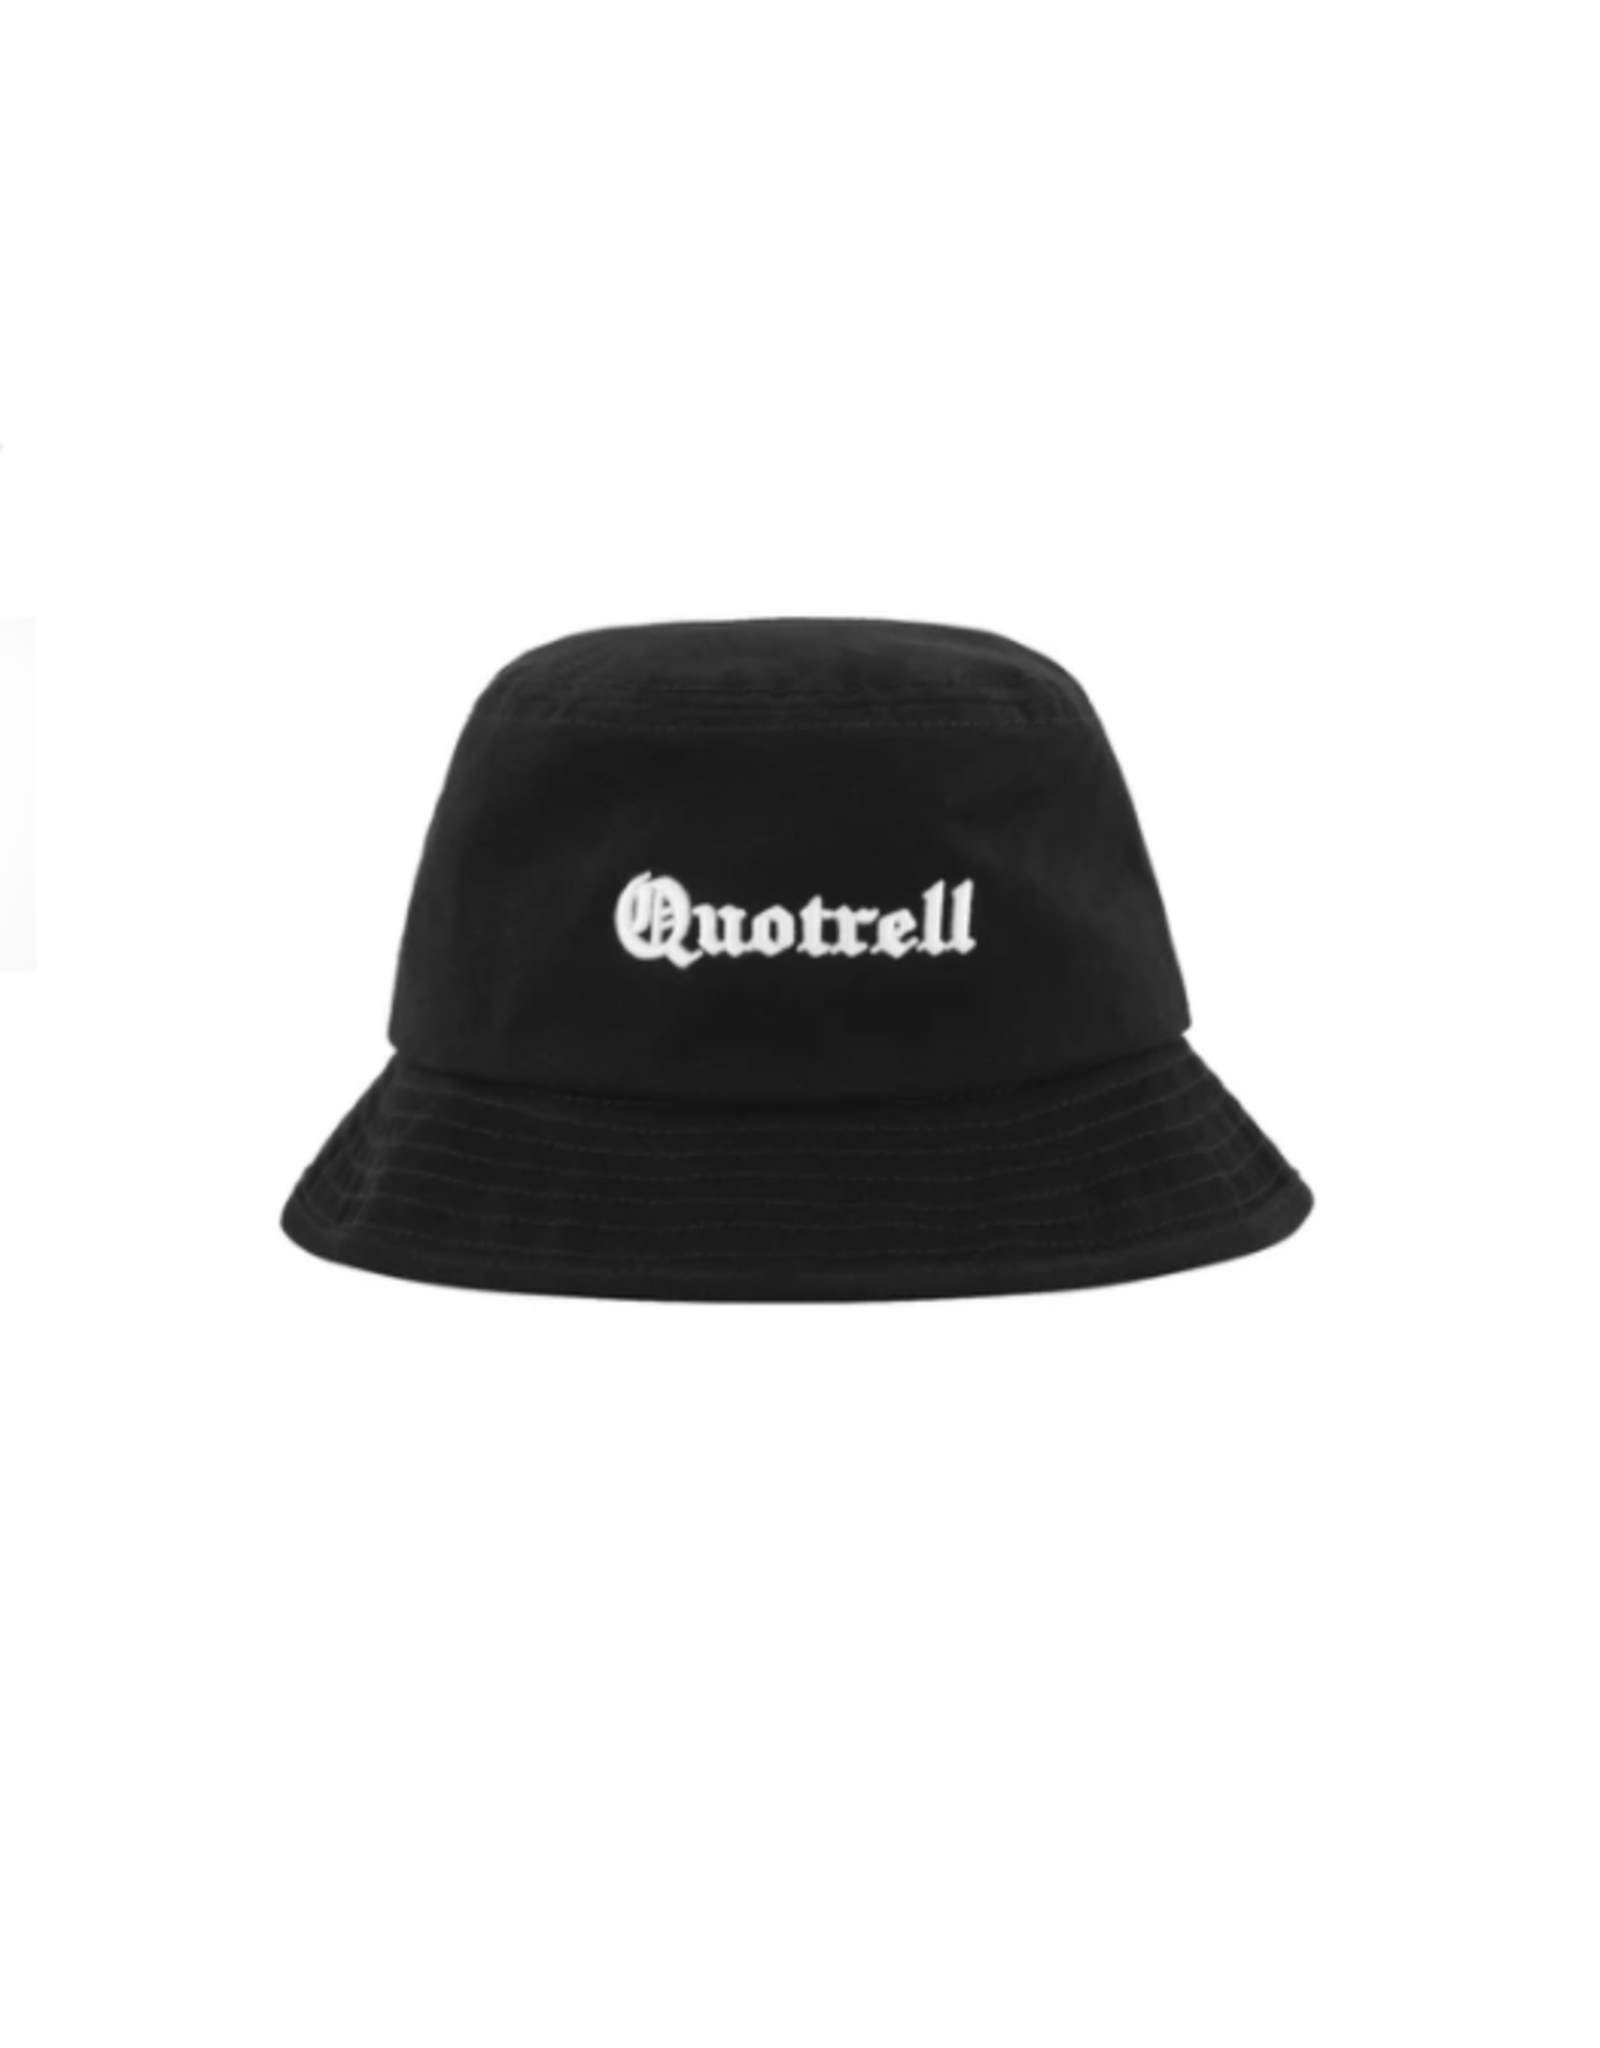 Quotrell Quotrell Miami Buckethat